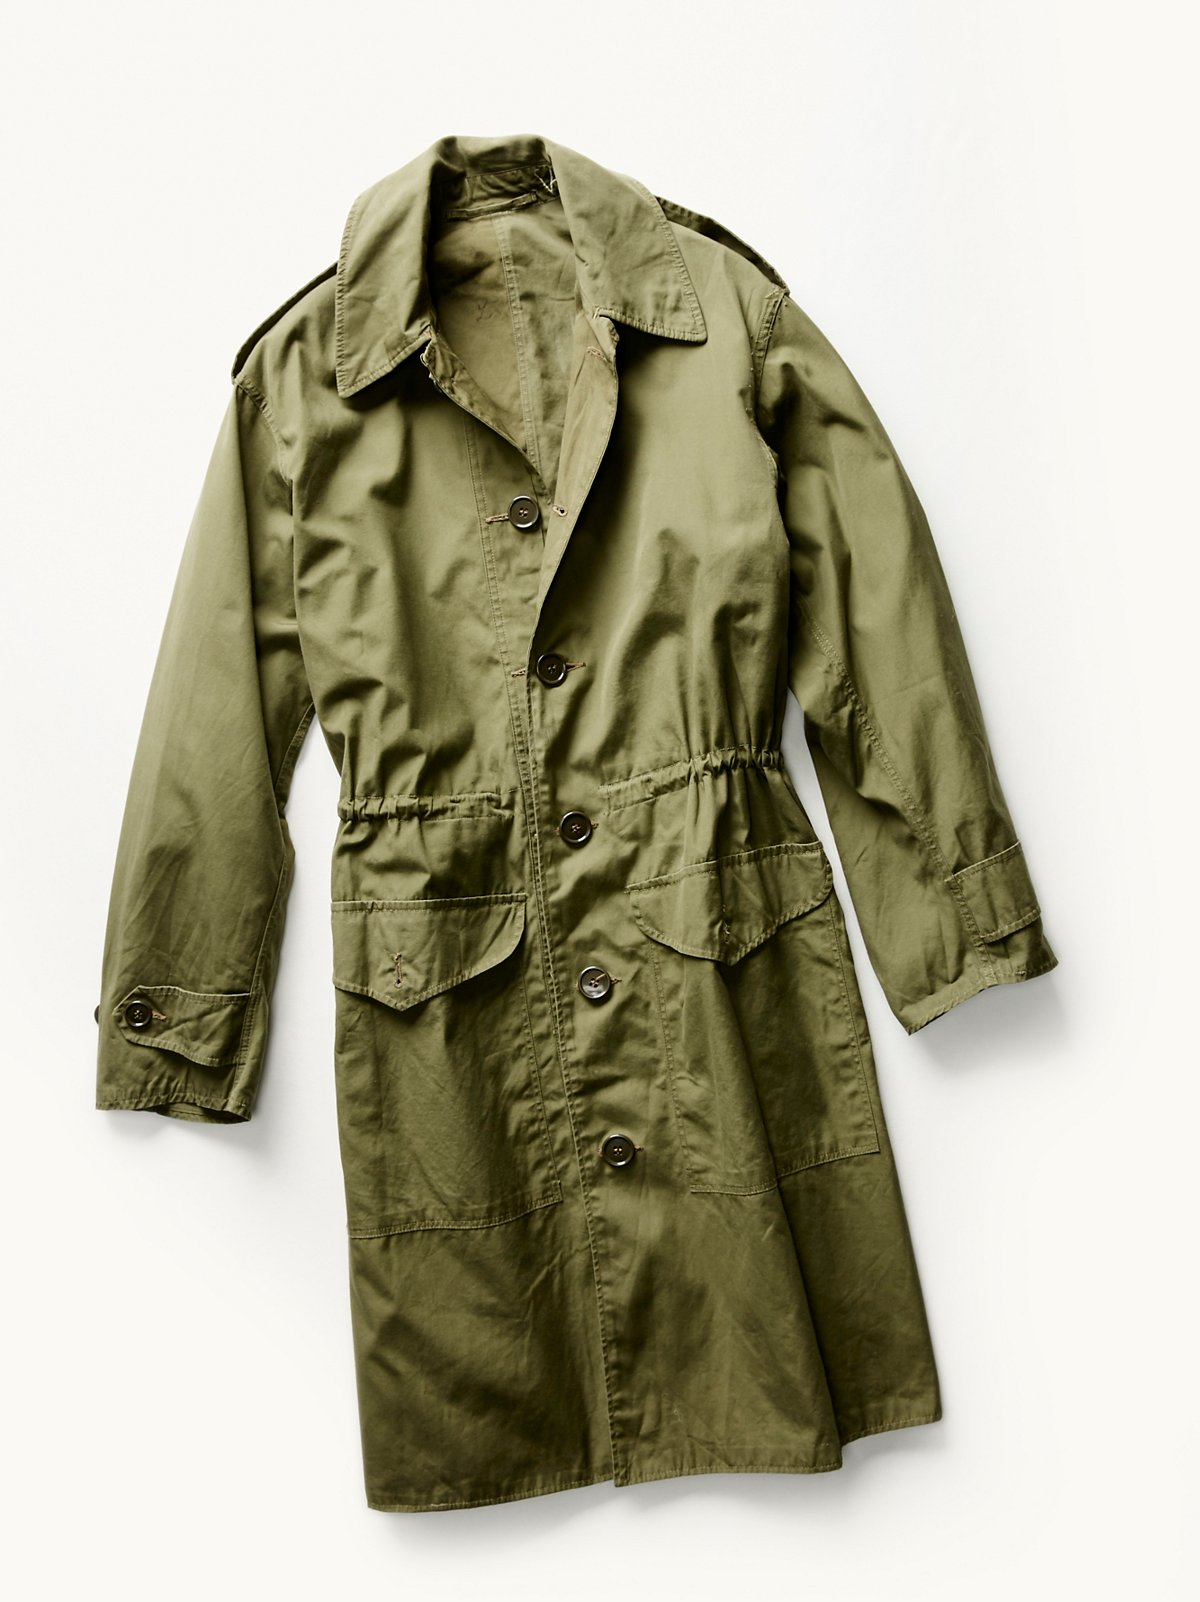 Vintage 1960s Military Trench Coat